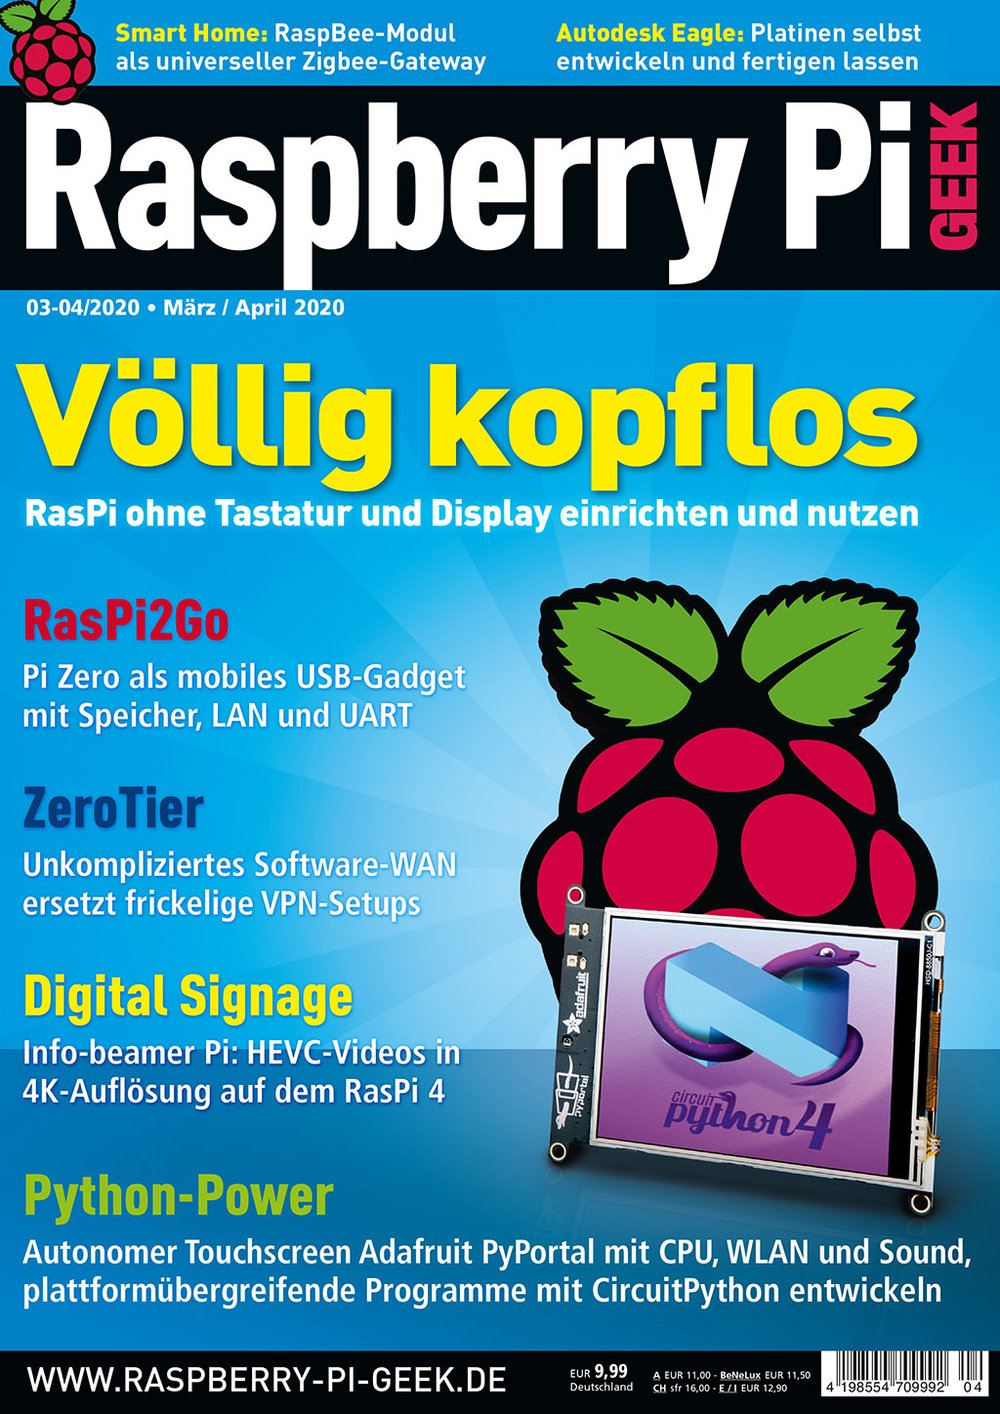 Raspberry Pi Geek 04/2020